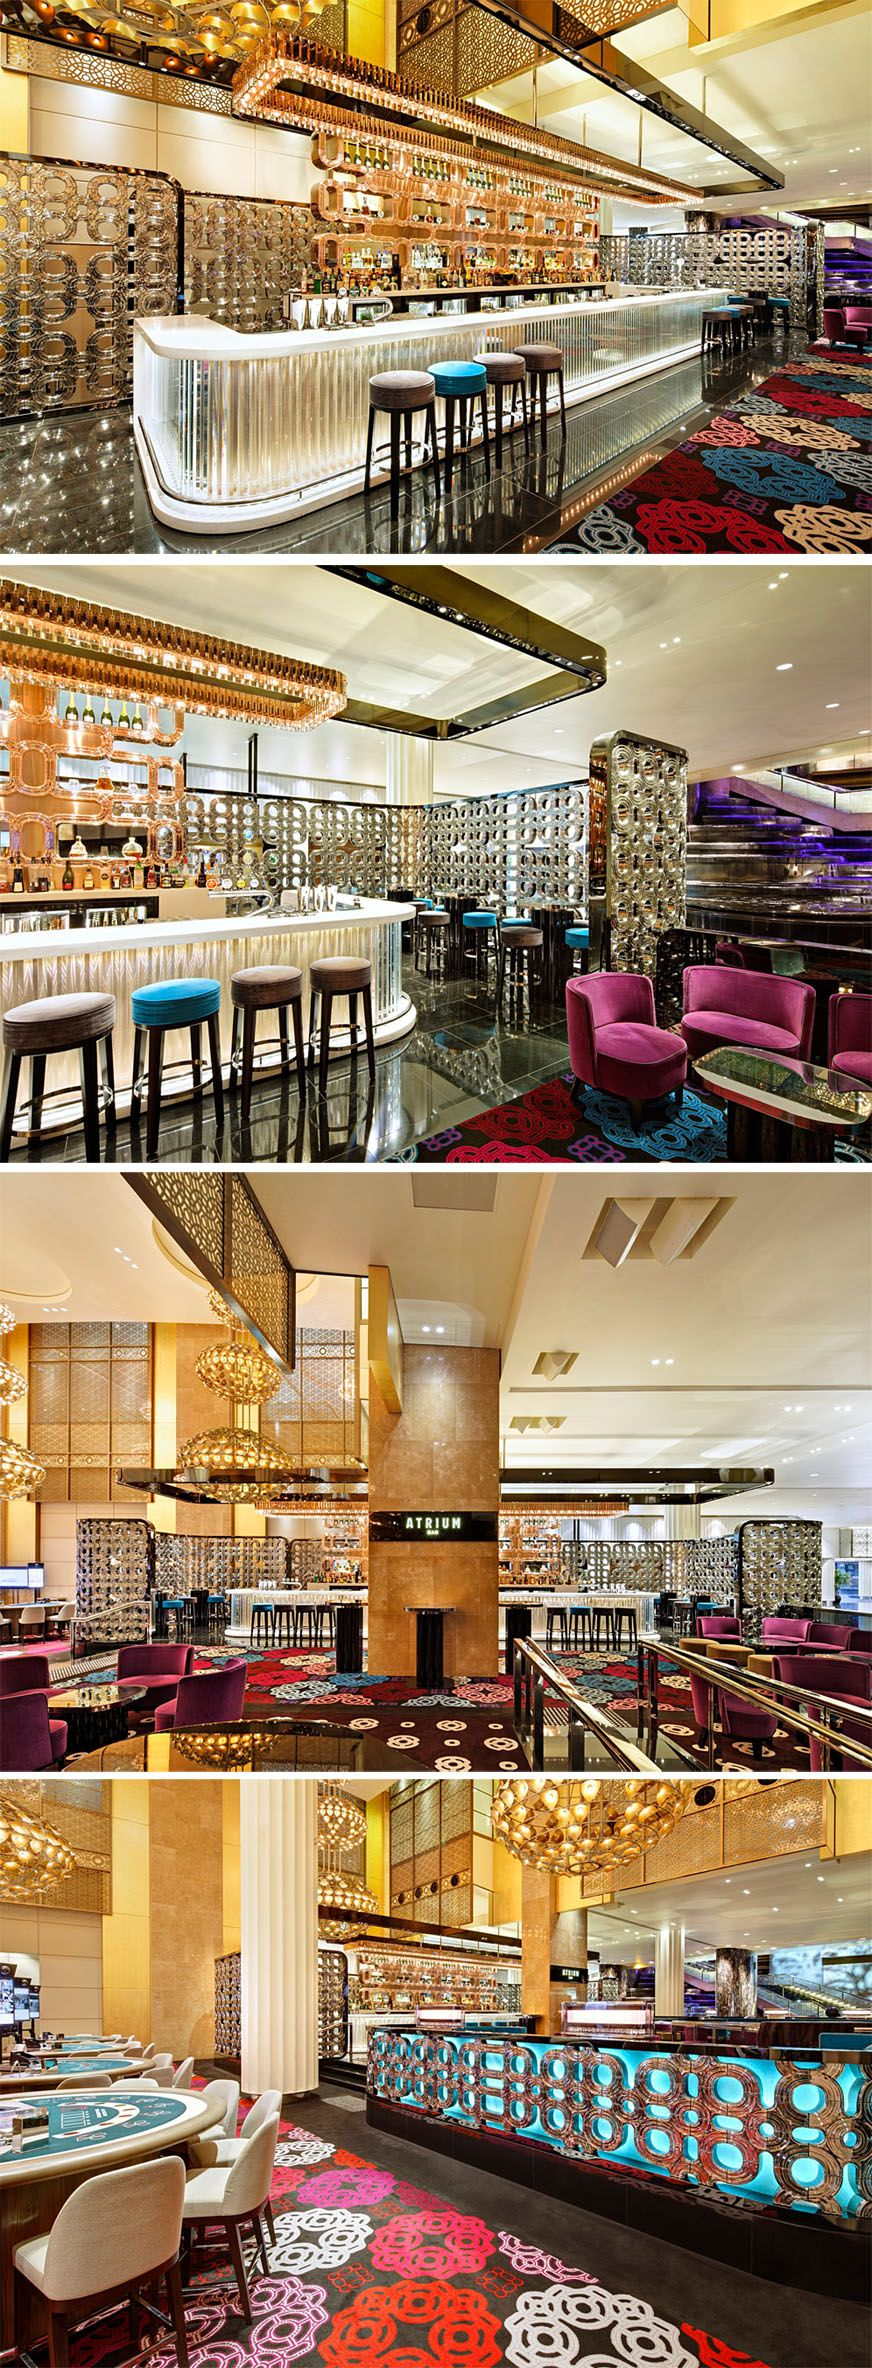 Crown Casino Italian Restaurant